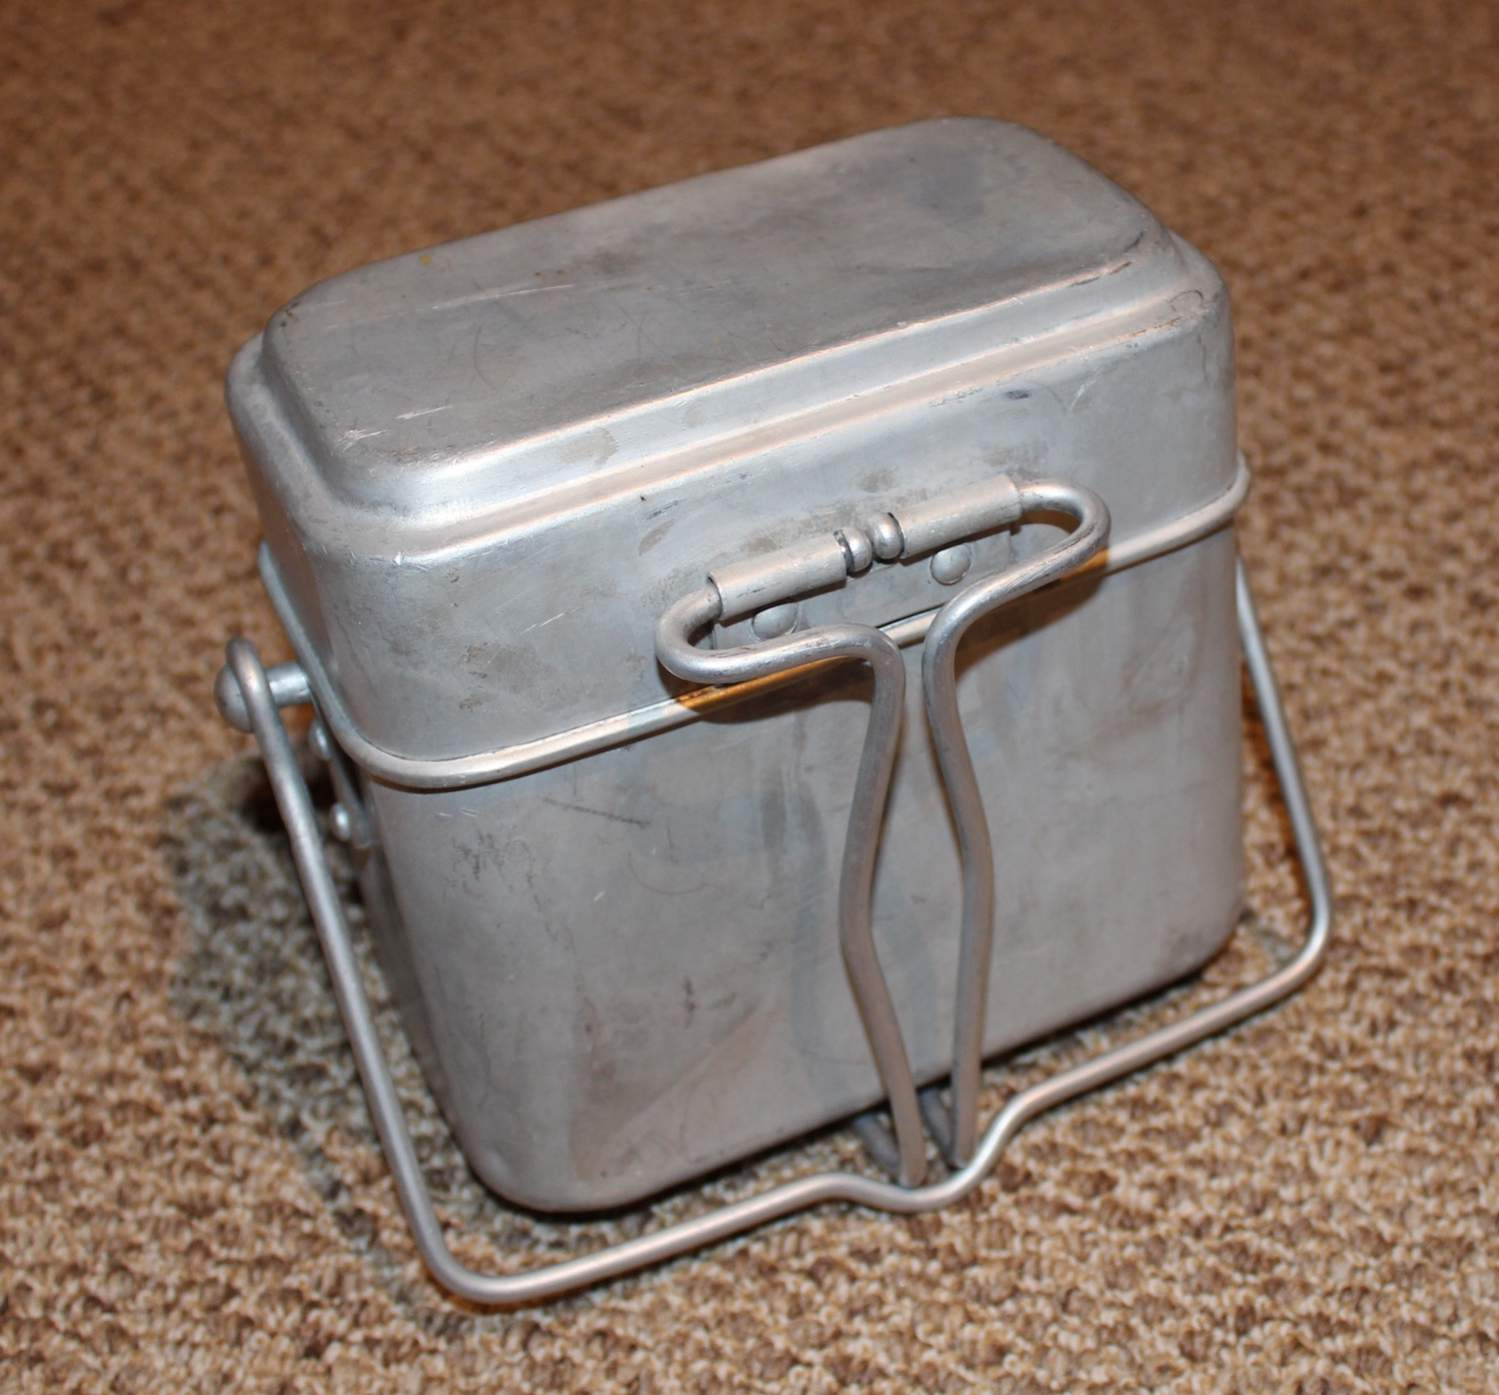 Question French M35 Mess kit